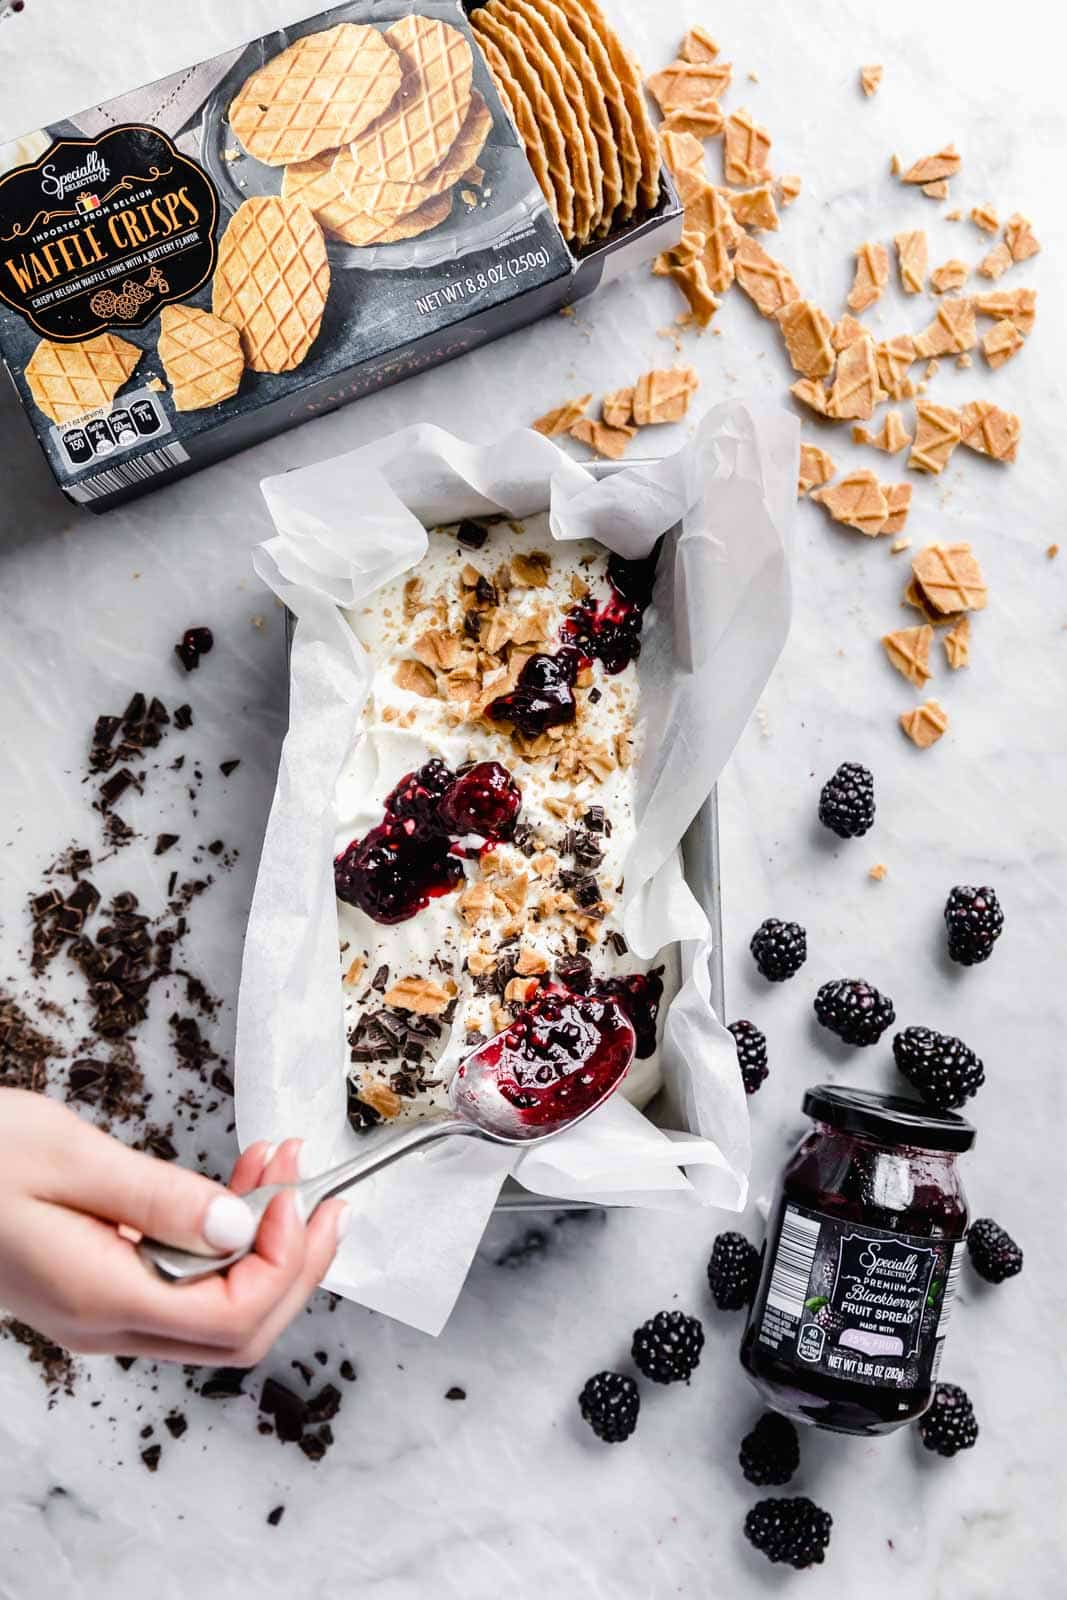 This creamy vanilla ice cream with fat blackberry swirls, buttery waffle pieces, and chocolate chips has us in heaven. Whip up this no churn blackberry waffle chocolate chip ice cream in minutes and skip the line at the ice cream shop.